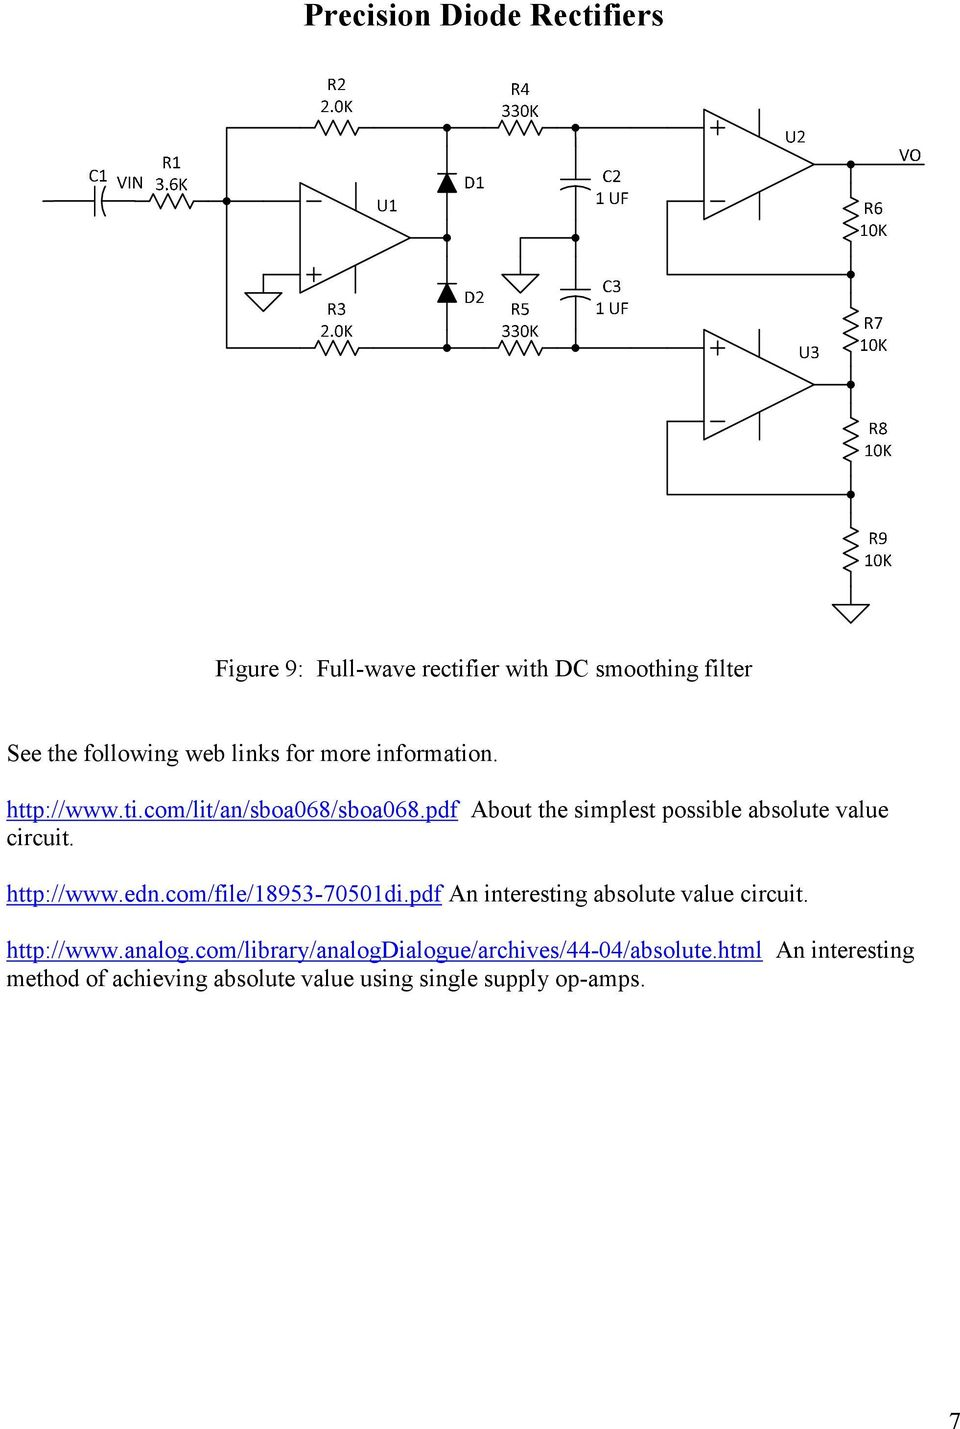 edn.com/file/18953-70501di.pdf An interesting absolute value circuit. http://www.analog.